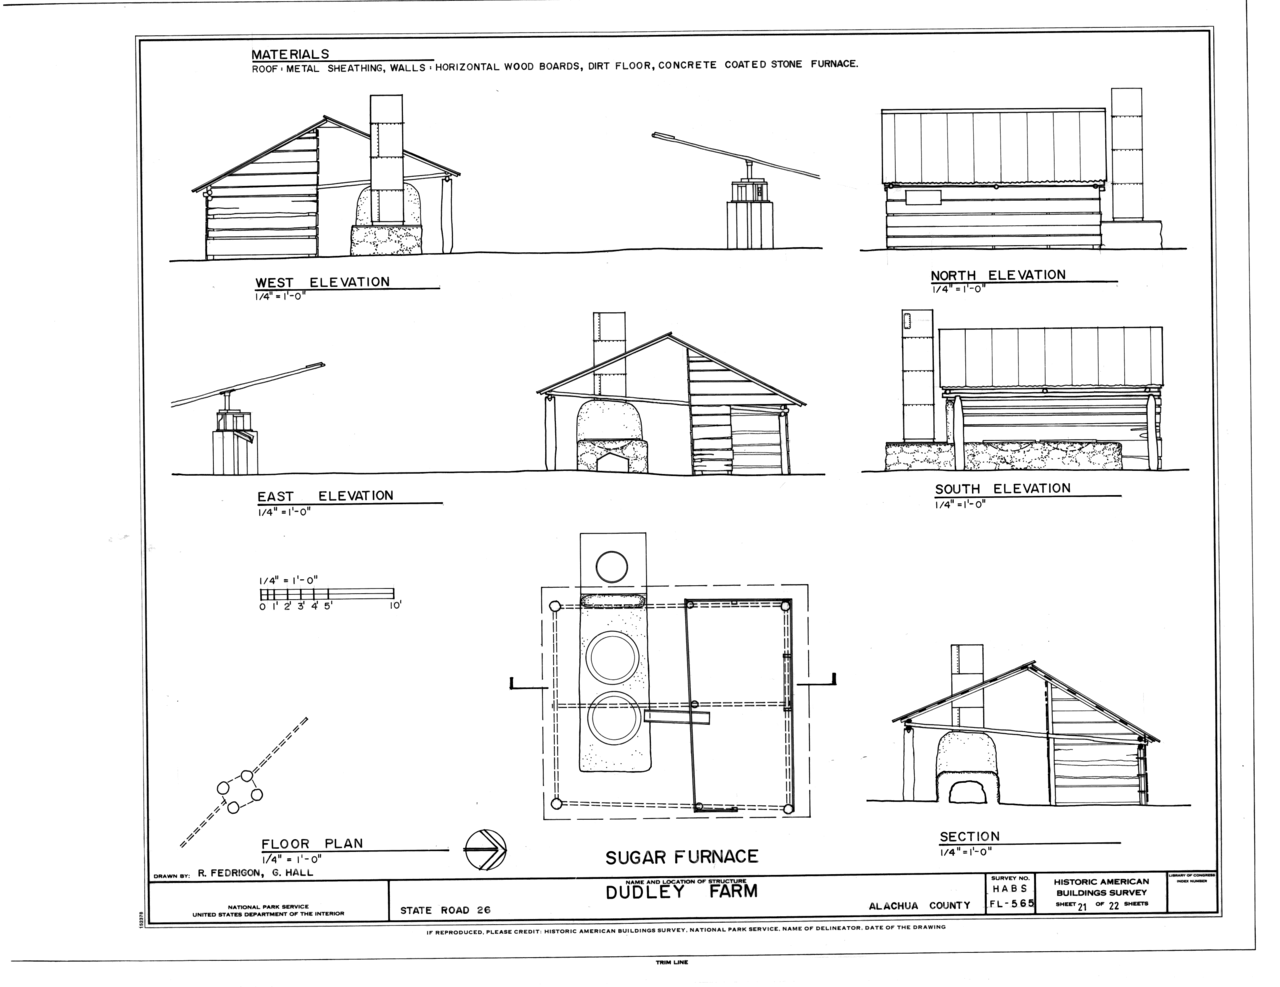 File Sugar Furnace Elevations Floor Plan And Section